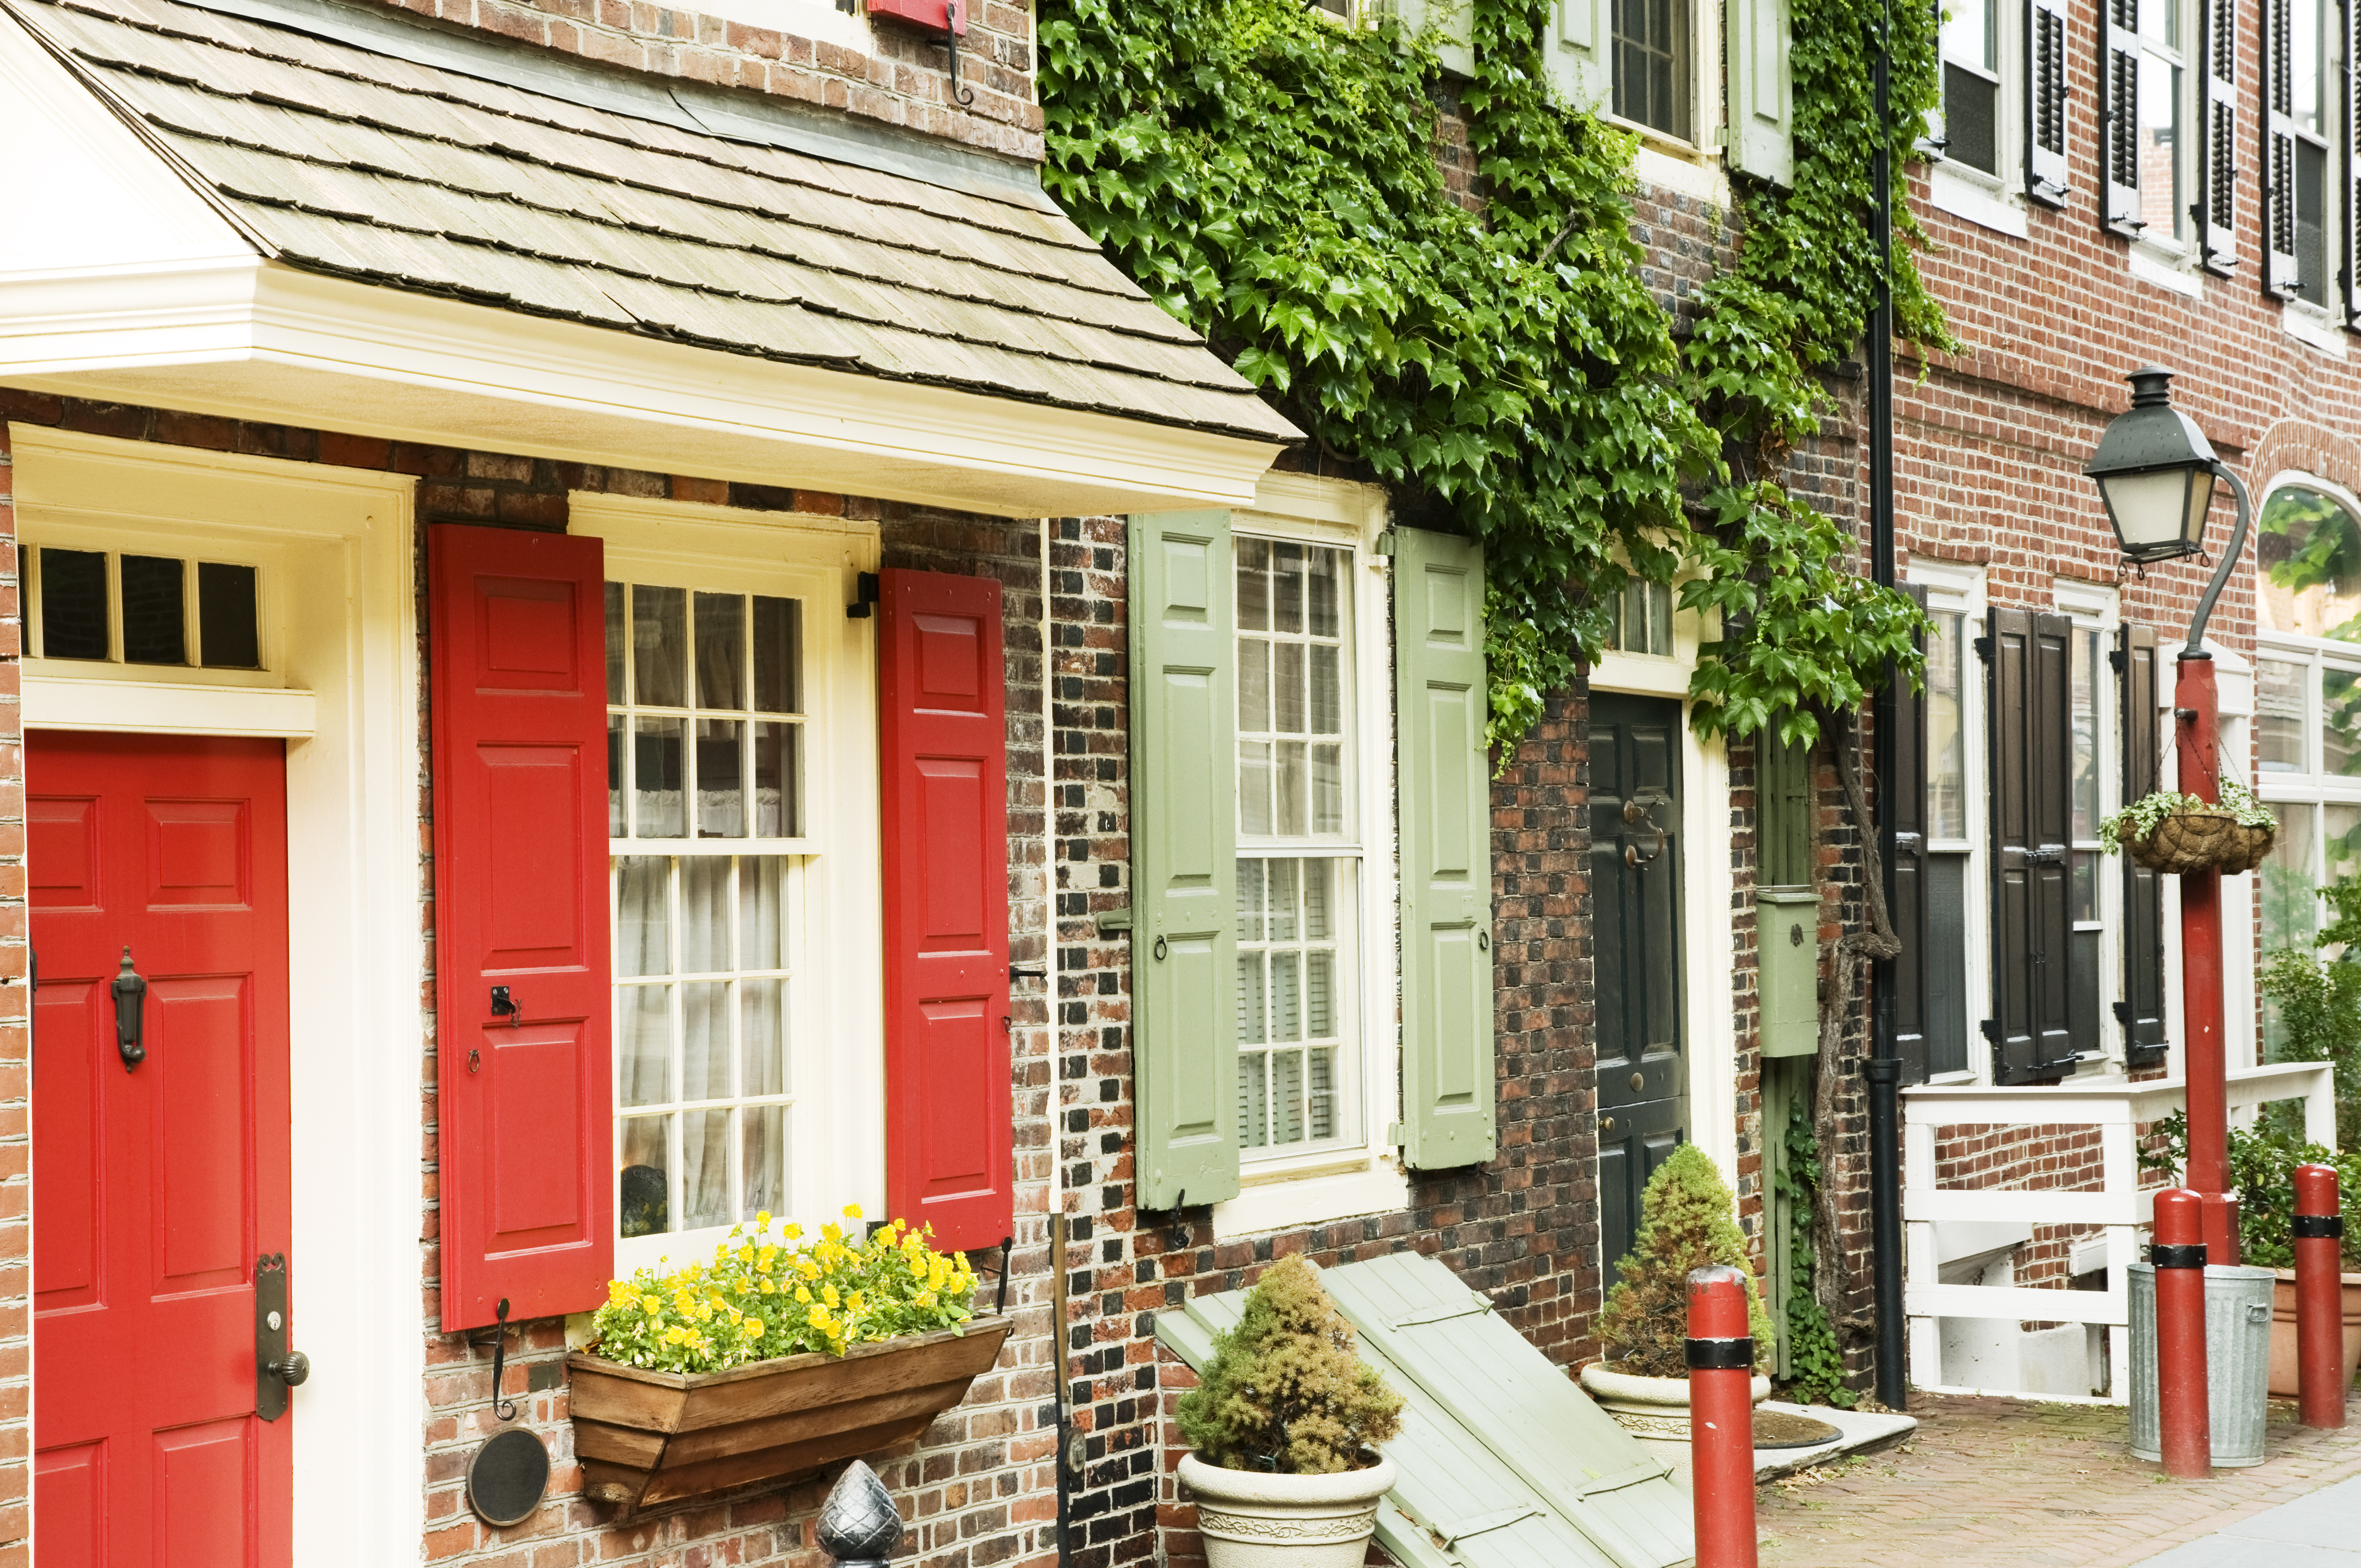 Historic Philadelphia street - Elfreth's Alley